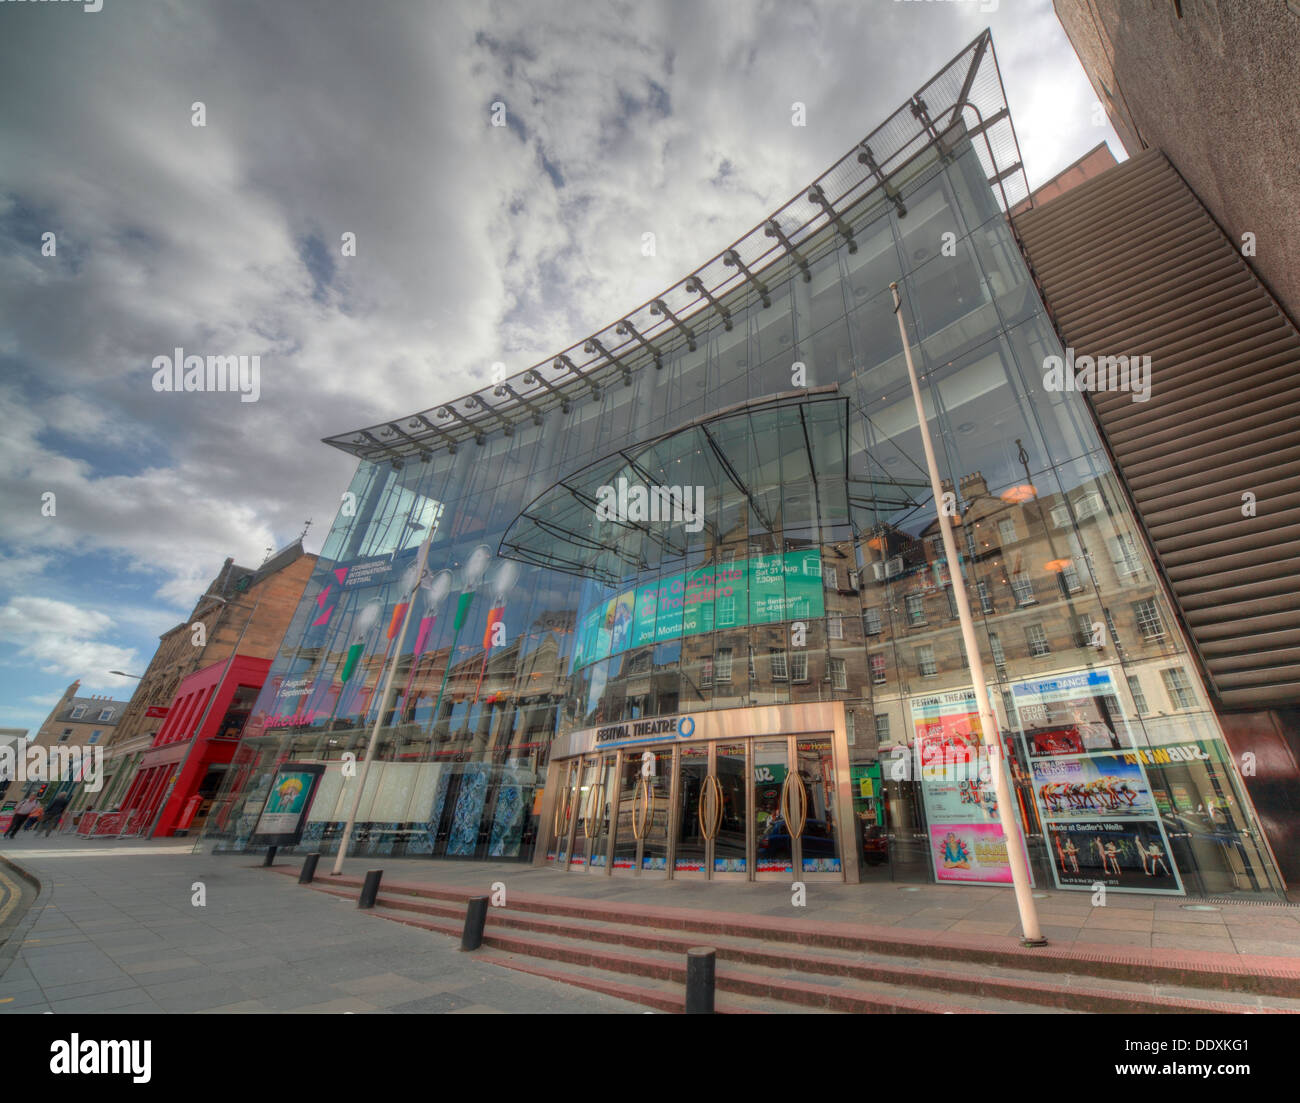 arts,venue,Nicolson,street,performance,performances,opera,ballet,empire,tourist,attraction,glass-fronted,structure,for,the,new,entrance,created,by,architect,Colin,Ross,glass,fronted,building,architecture,dramatic,mix,of,art,nouveau,beaux,arts,and,neo-classicism,neoclassicism,Gotonysmith,The,Edinburgh,Festival,Theatre,is,a,performing,arts,venue,located,on,Nicolson,Street,in,Edinburgh,Scotland used primarily for performances of opera and ballet,large-scale musical events,and touring groups. After its most recent renovation in 1994,it seats 1,915.,It,is,one,of,the,major,venues,of,the,annual,summer,Edinburgh,International,Festival,and,is,the,Edinburgh,venue,for,the,Scottish,Opera,and,the,Scottish,Ballet.,The,present,theatre's,location,is,Edinburgh's,longest,continuous,theatre,site,for,there,has,been,a,theatre,in,that,location,since,1830.,From,being,Dunedin,Hall,the Royal Amphitheatre,Alhambra Music Hall,the Queen's Theatre,Pablo Fanques Amphitheatre,13-29 Nicolson St,Edinburgh EH89FT EH8 9FT 13 29,oldtown,attraction,attractions,Buy Pictures of,Buy Images Of